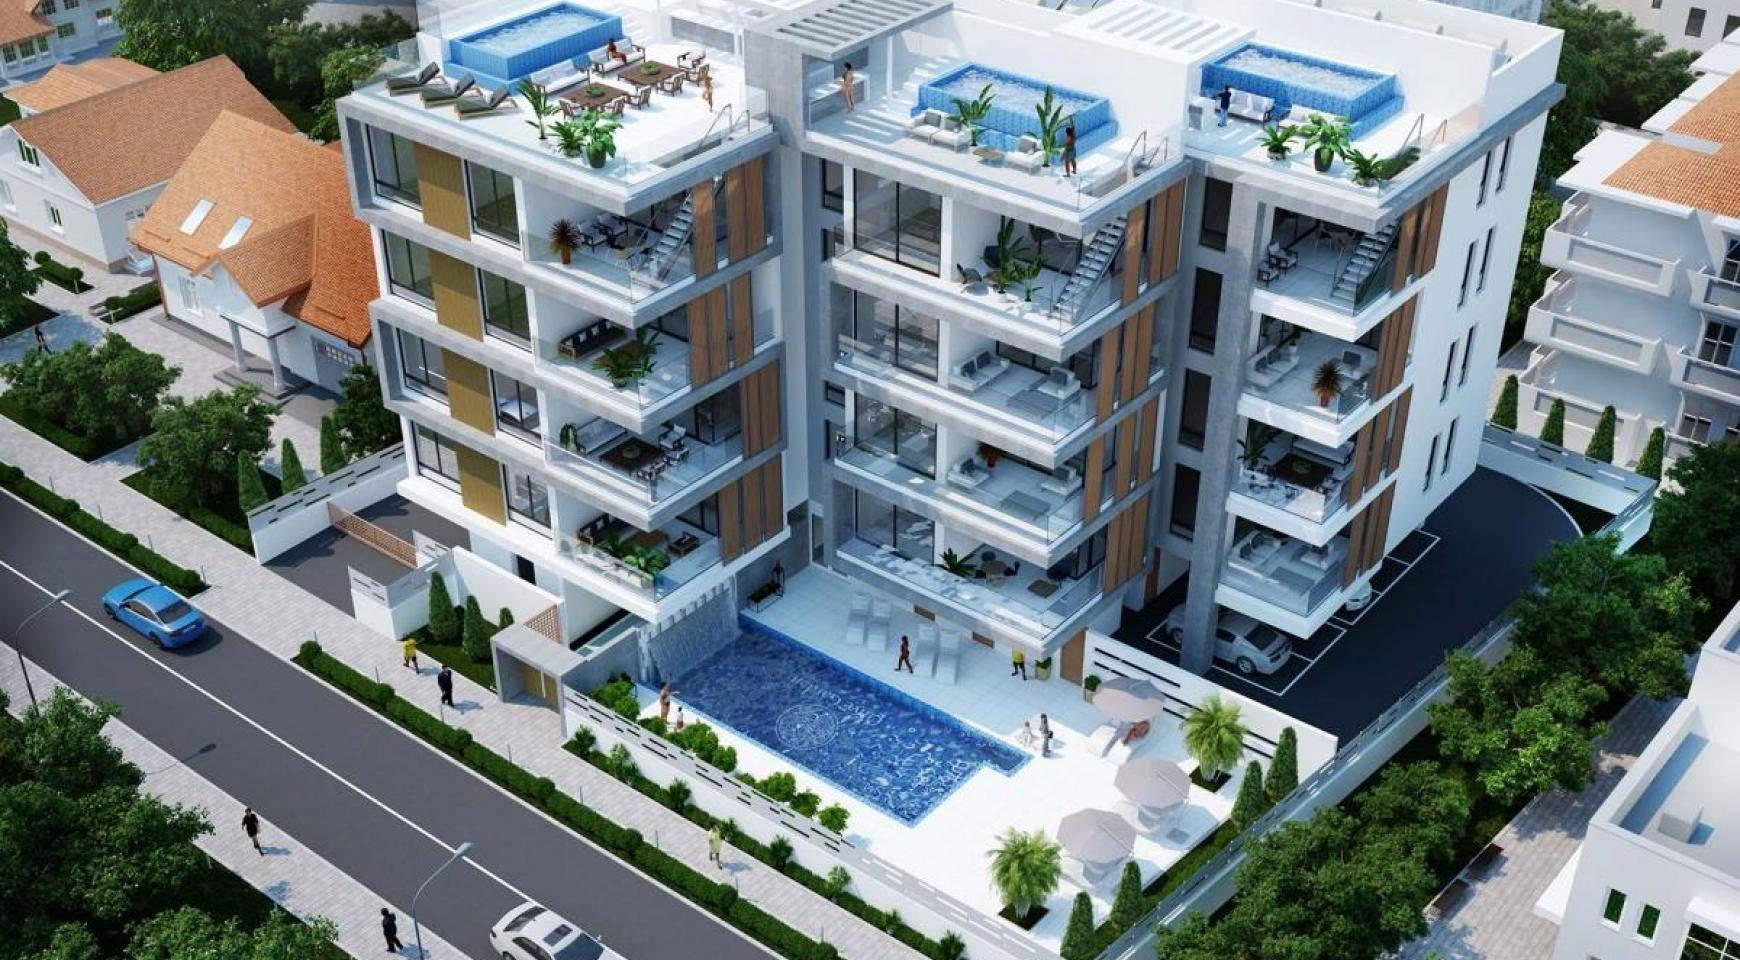 2 Bedroom Penthouse in a New Complex near the Sea - 8